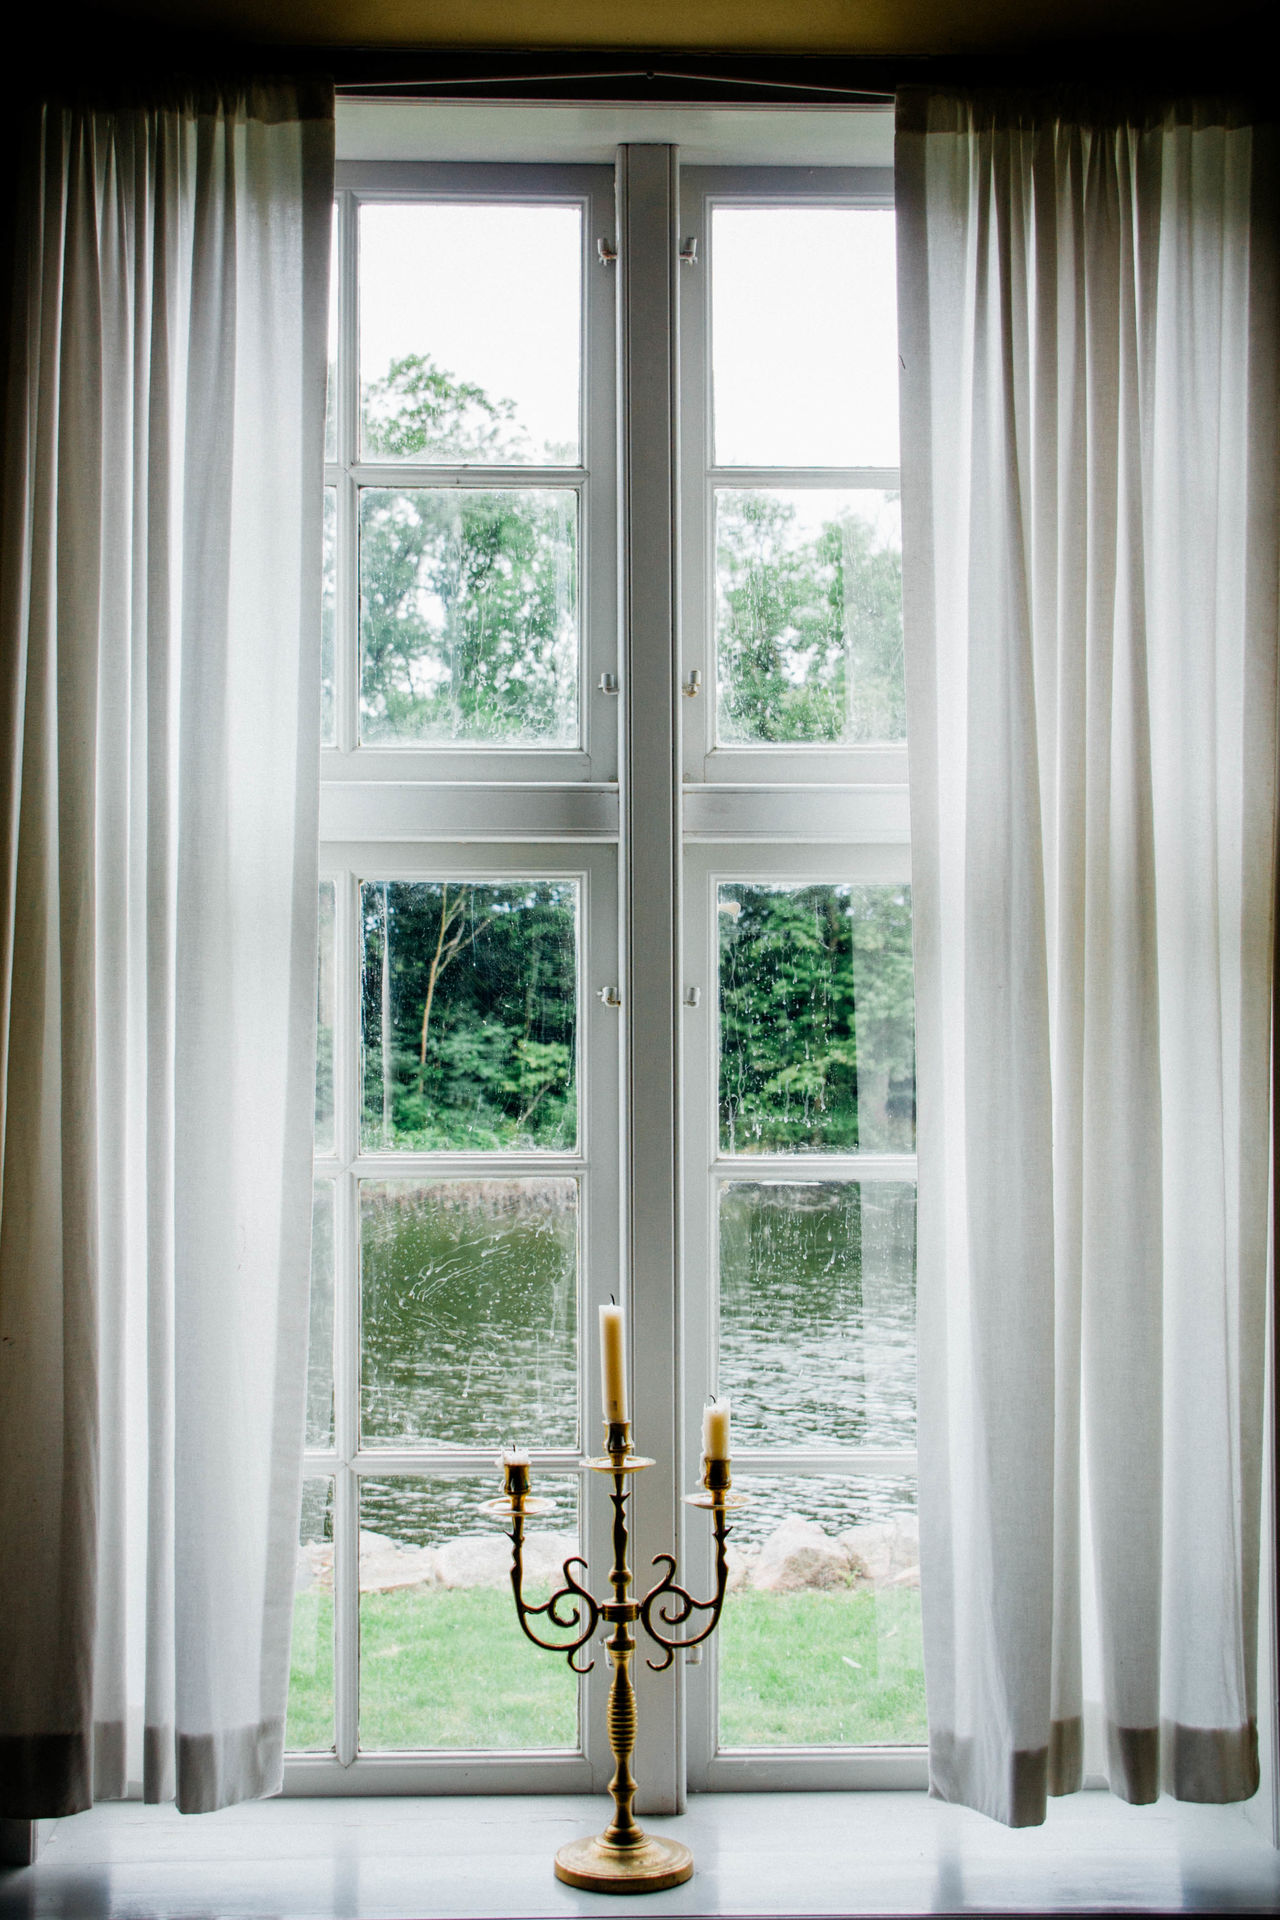 Candle Candleabra Pri Curtains Day Freshness Glass - Material Indoors  Symmetrical Symmetry Window Window Frame Color Palette